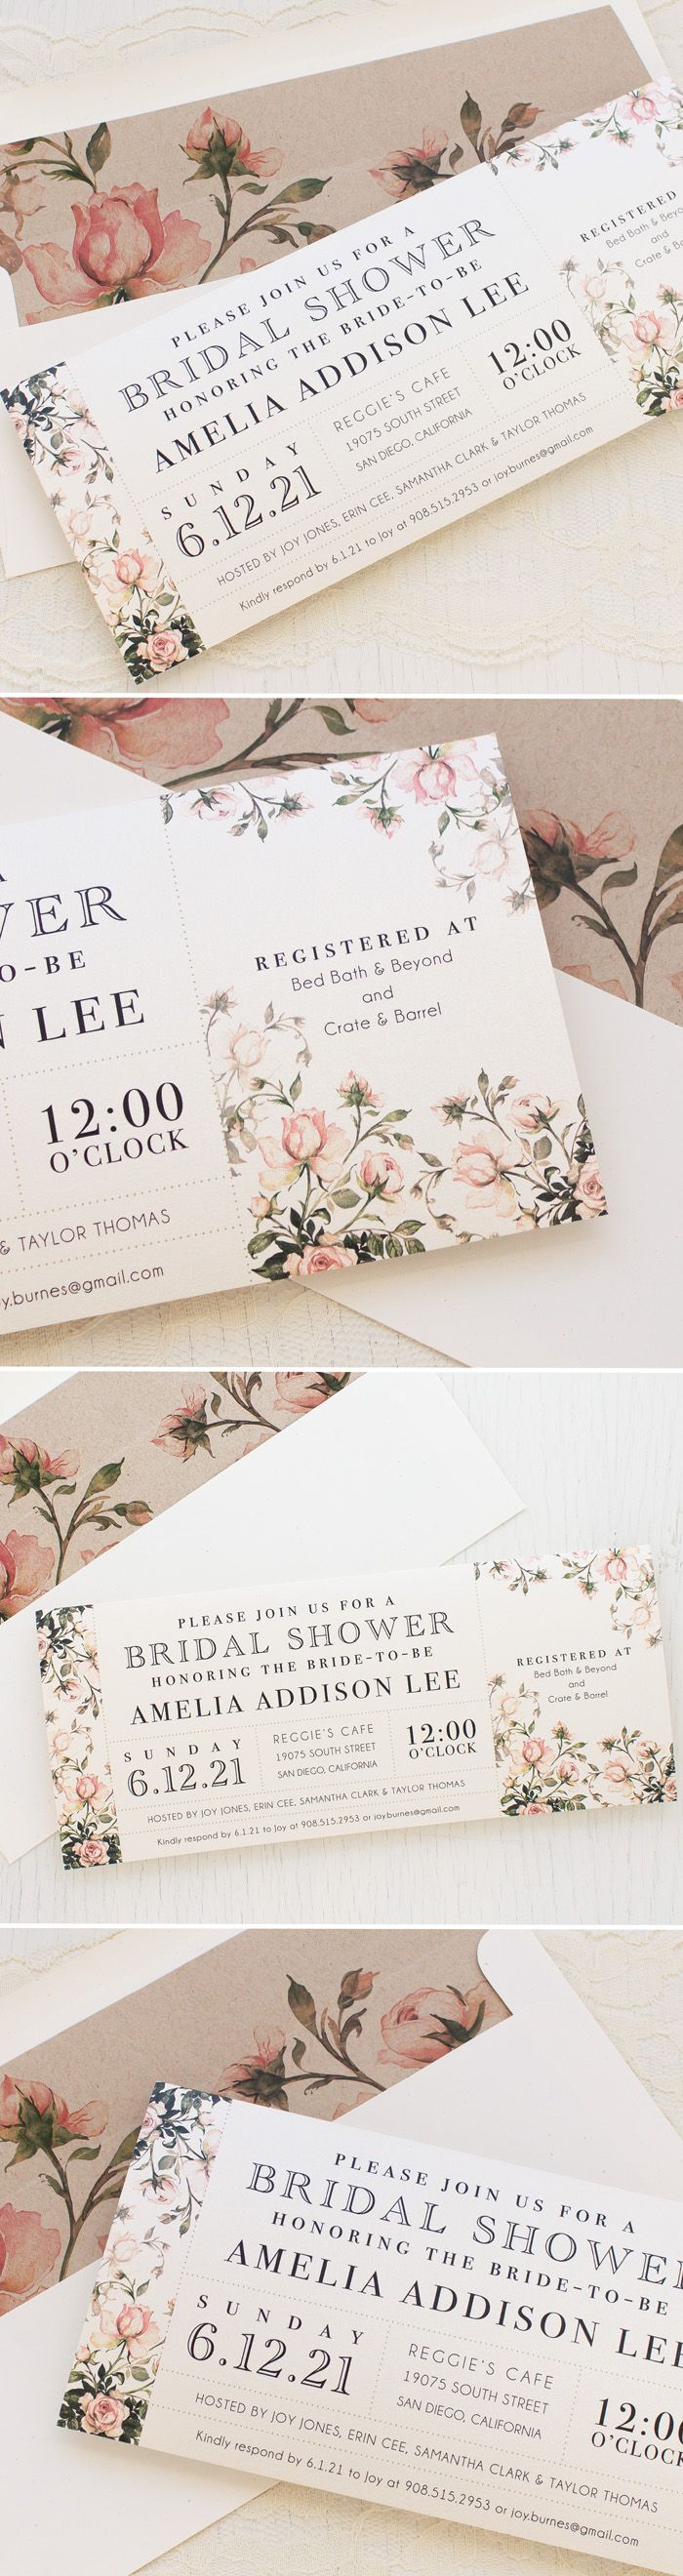 632 Best Wedding Invitations Images On Pinterest Invitations